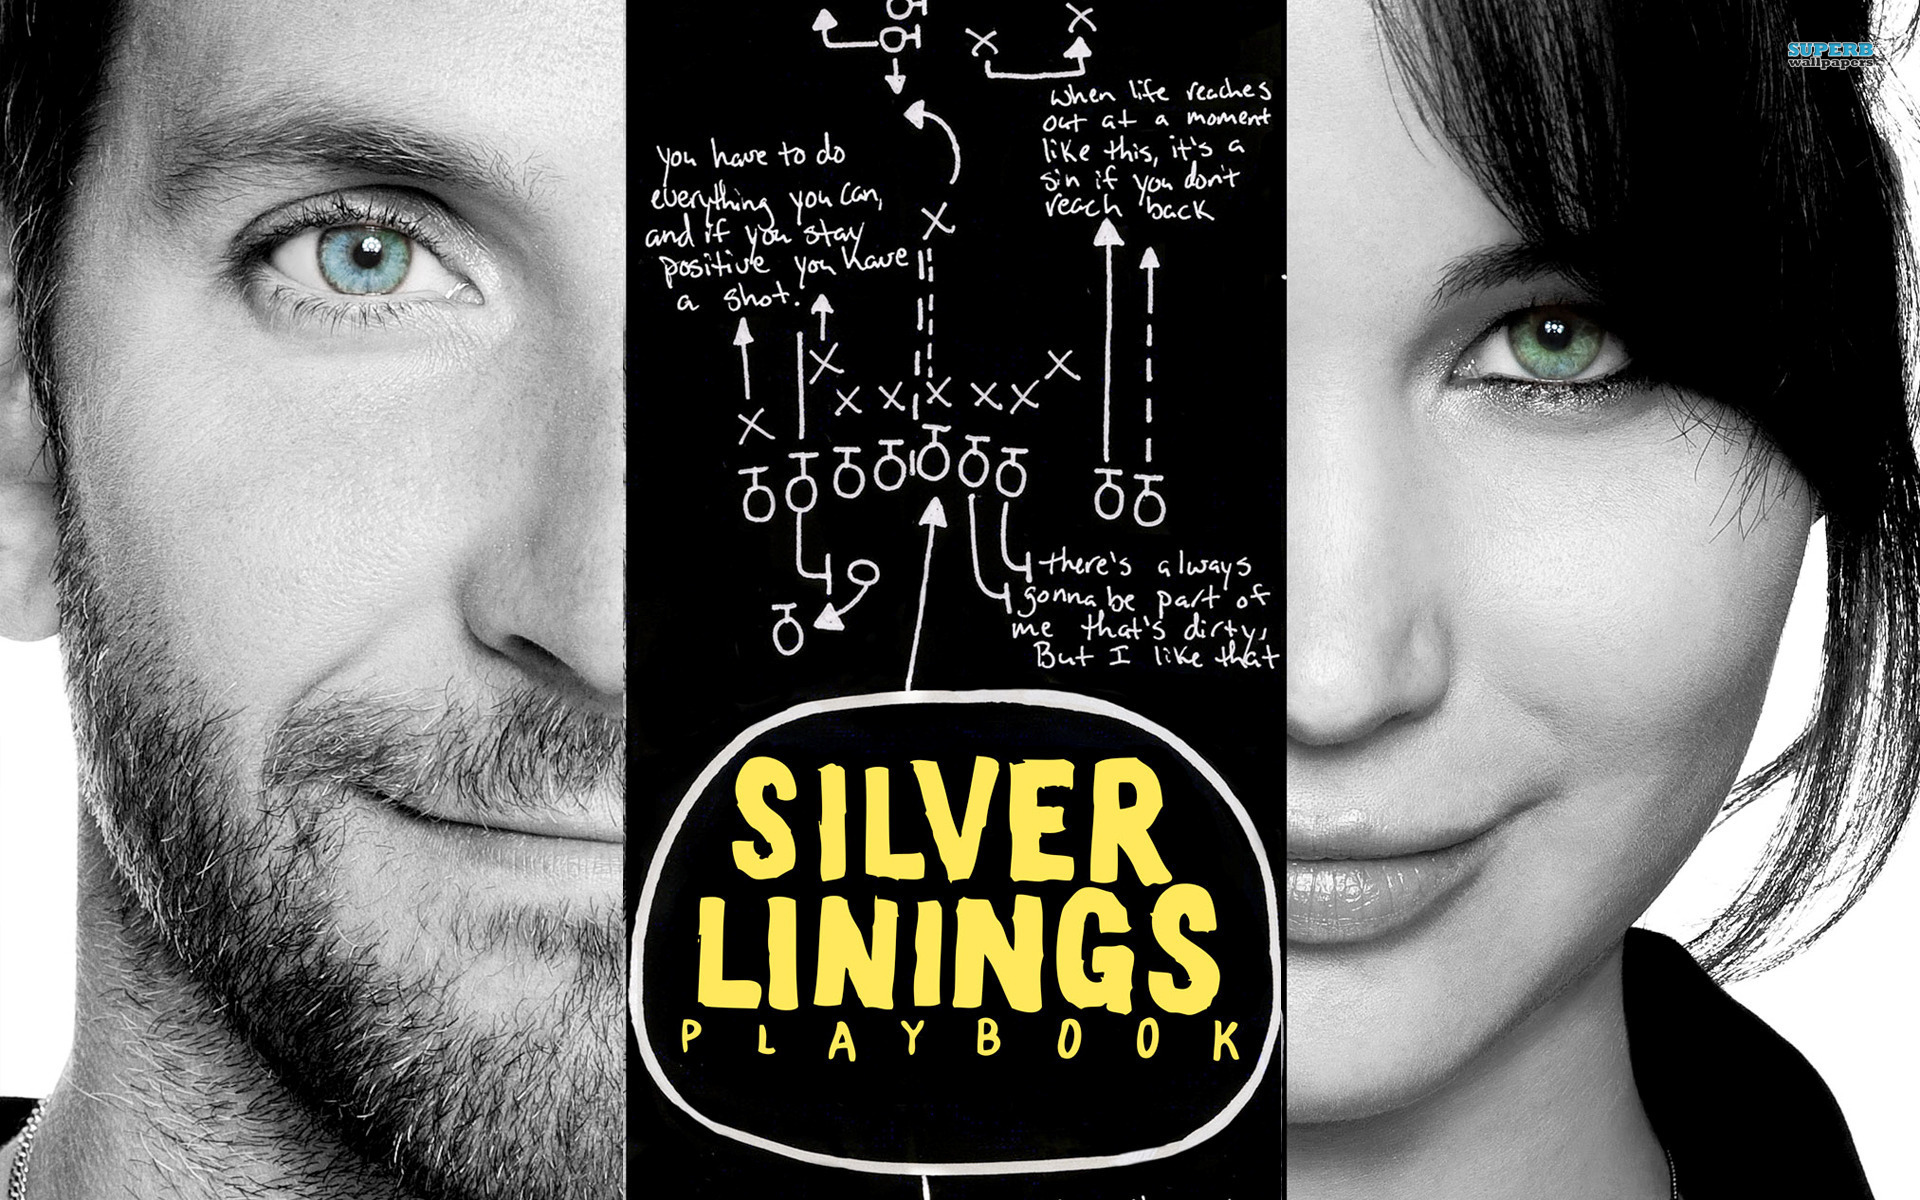 http://netflixlife.com/files/2015/11/silver-linings-playbook.jpg